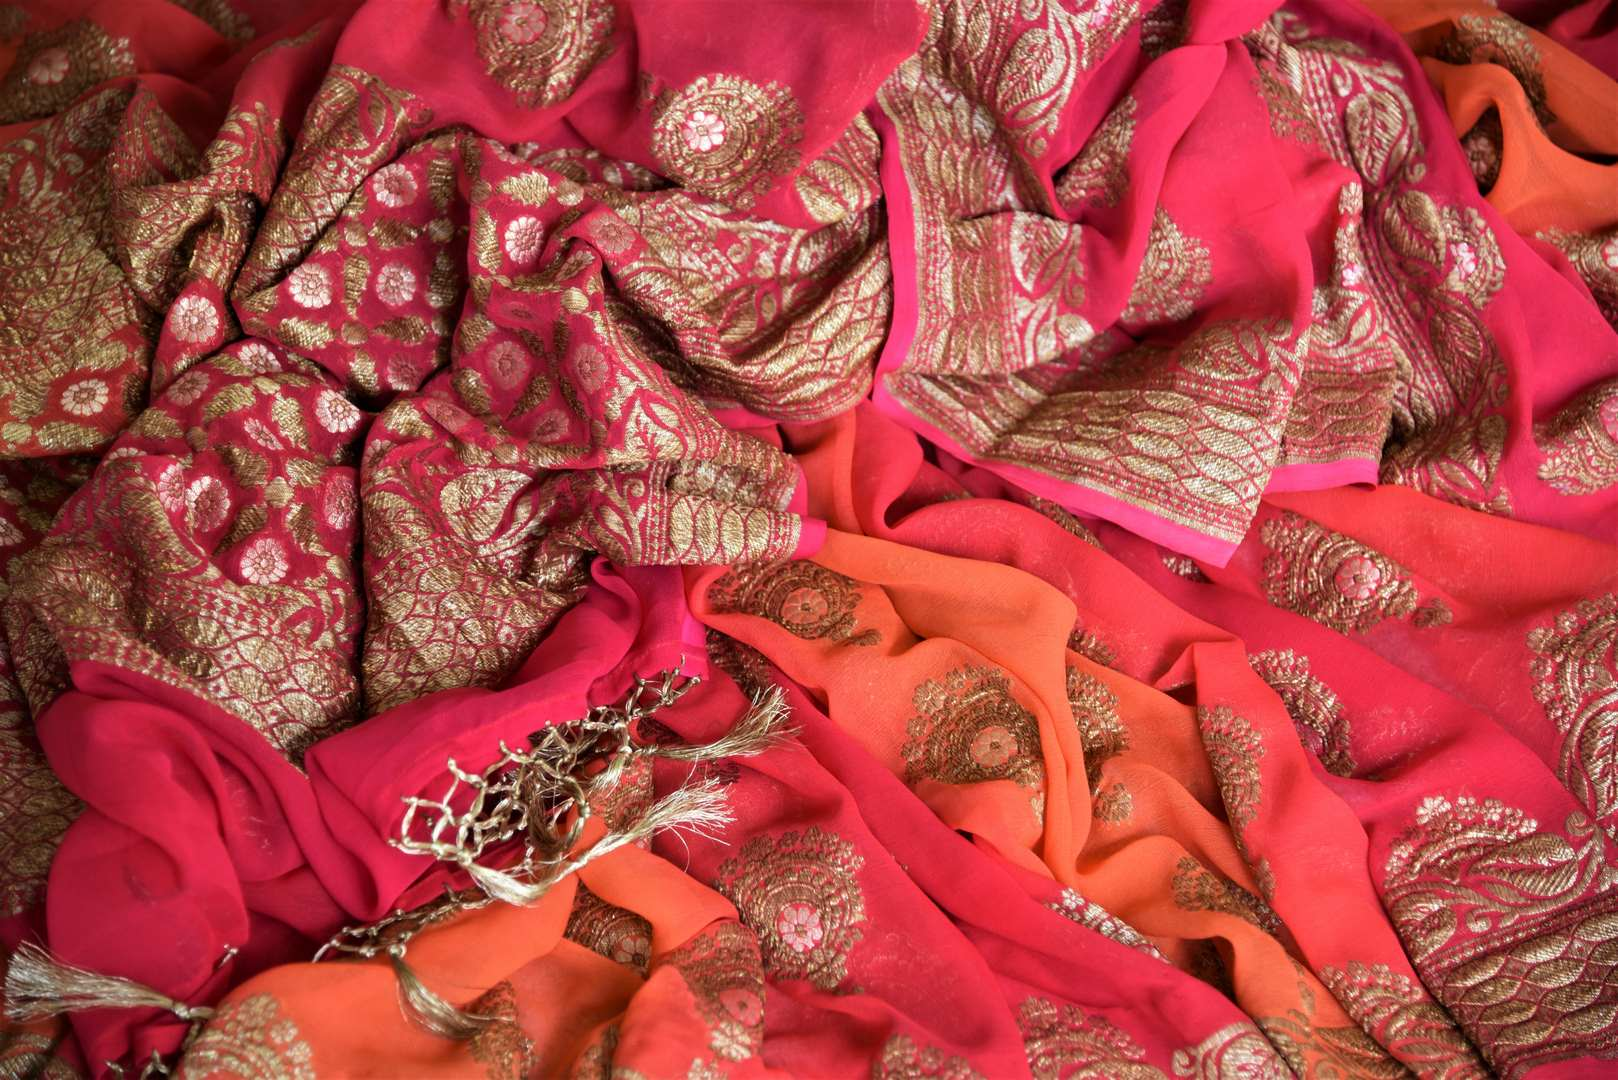 Buy online pink and orange georgette Banarasi saree in USA with floral design. Give your look an elegant touch with beautiful Indian sarees available at Pure Elegance Indian fashion store in USA or shop online.-details